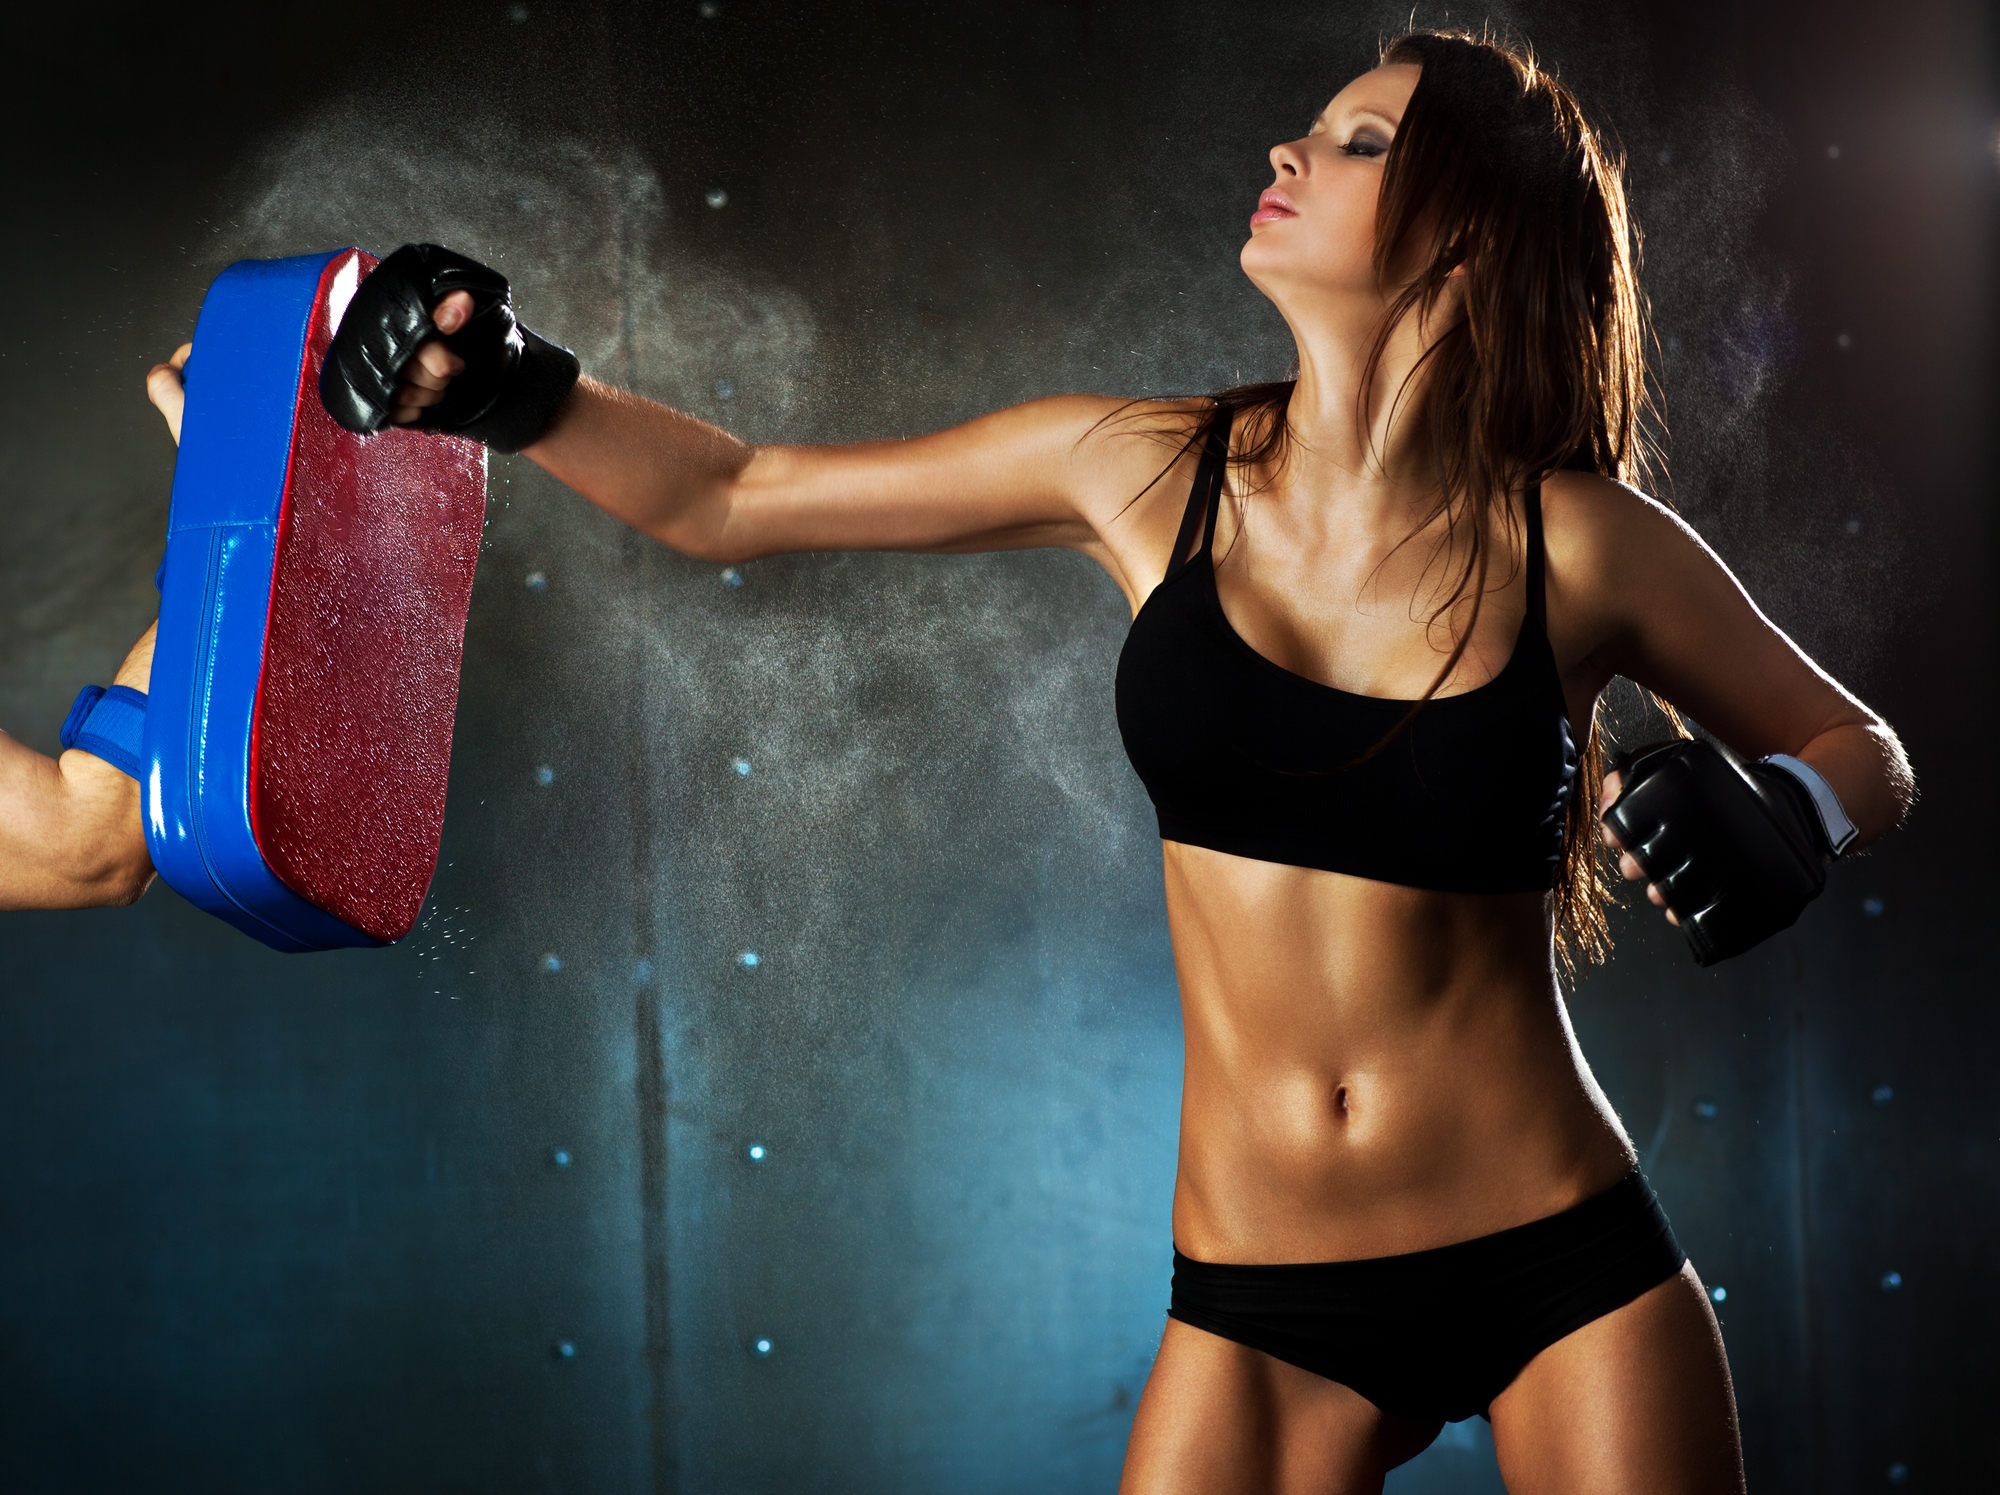 Young sexy woman hitting punching bag.